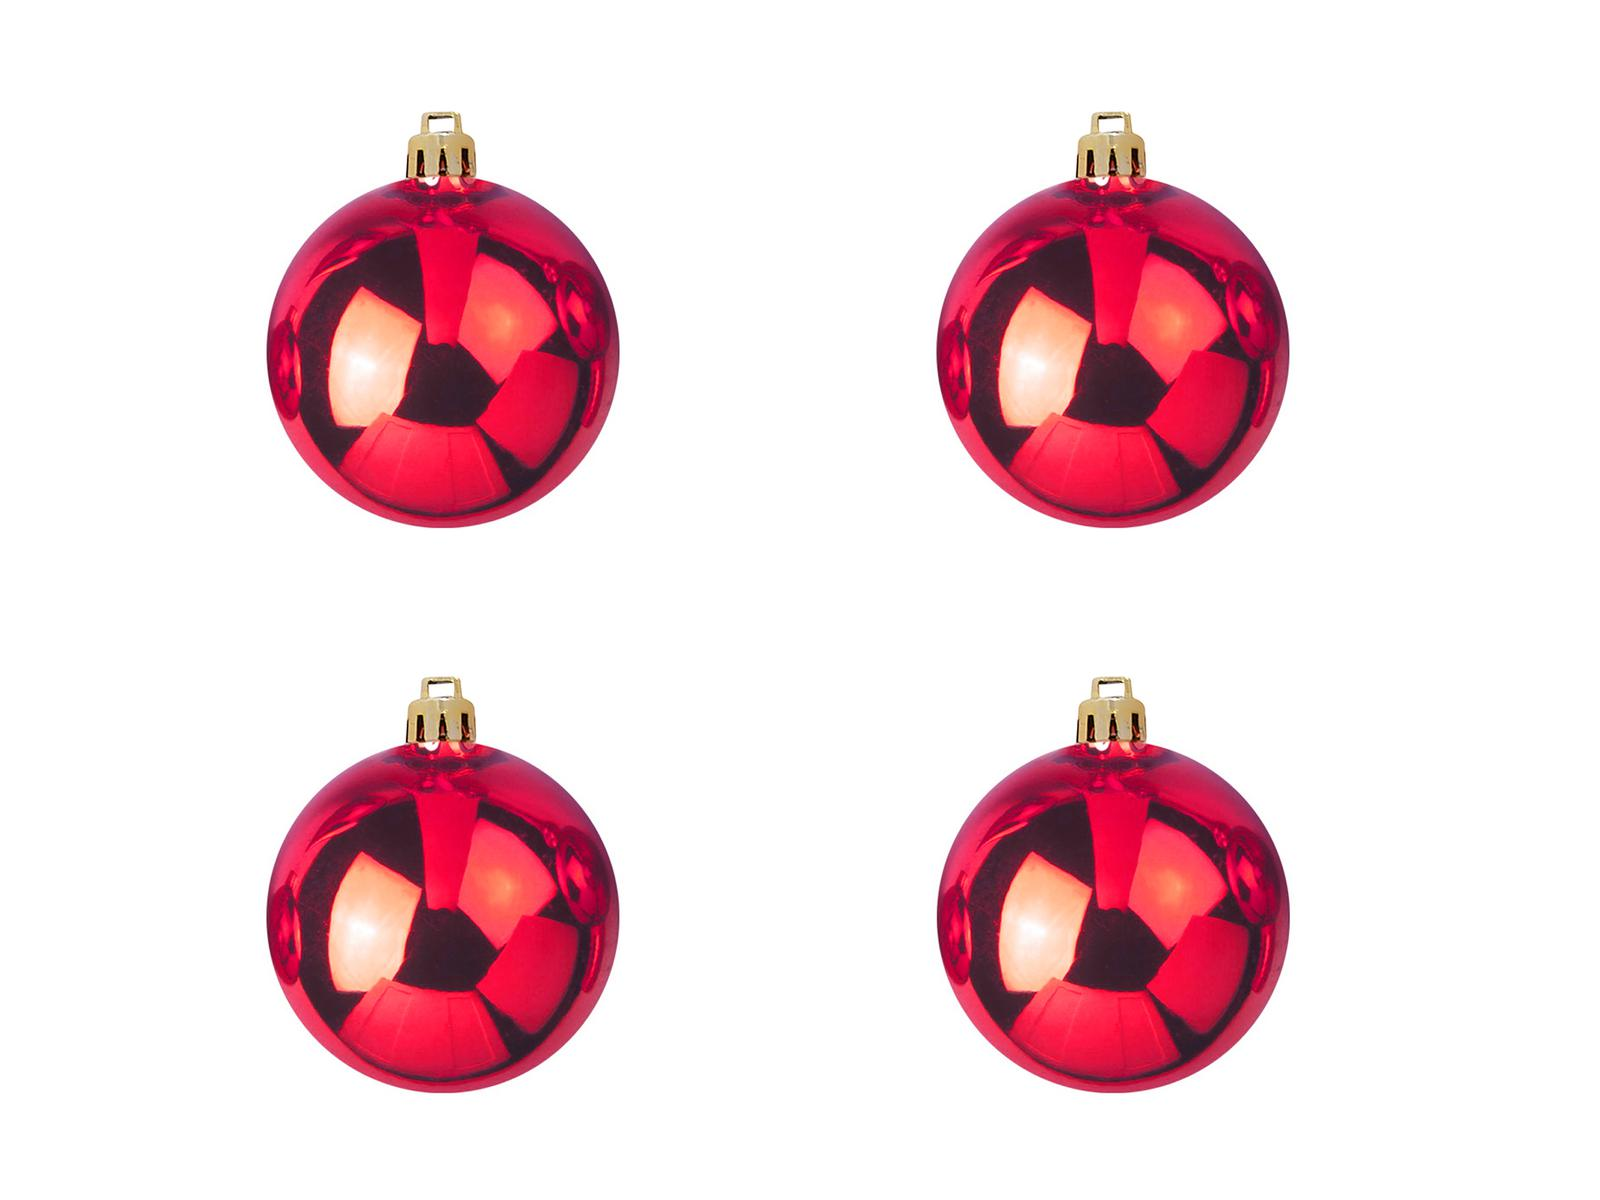 Balls Balls christmas Plastic 10Cm for Tree decoration 4 pcs Red